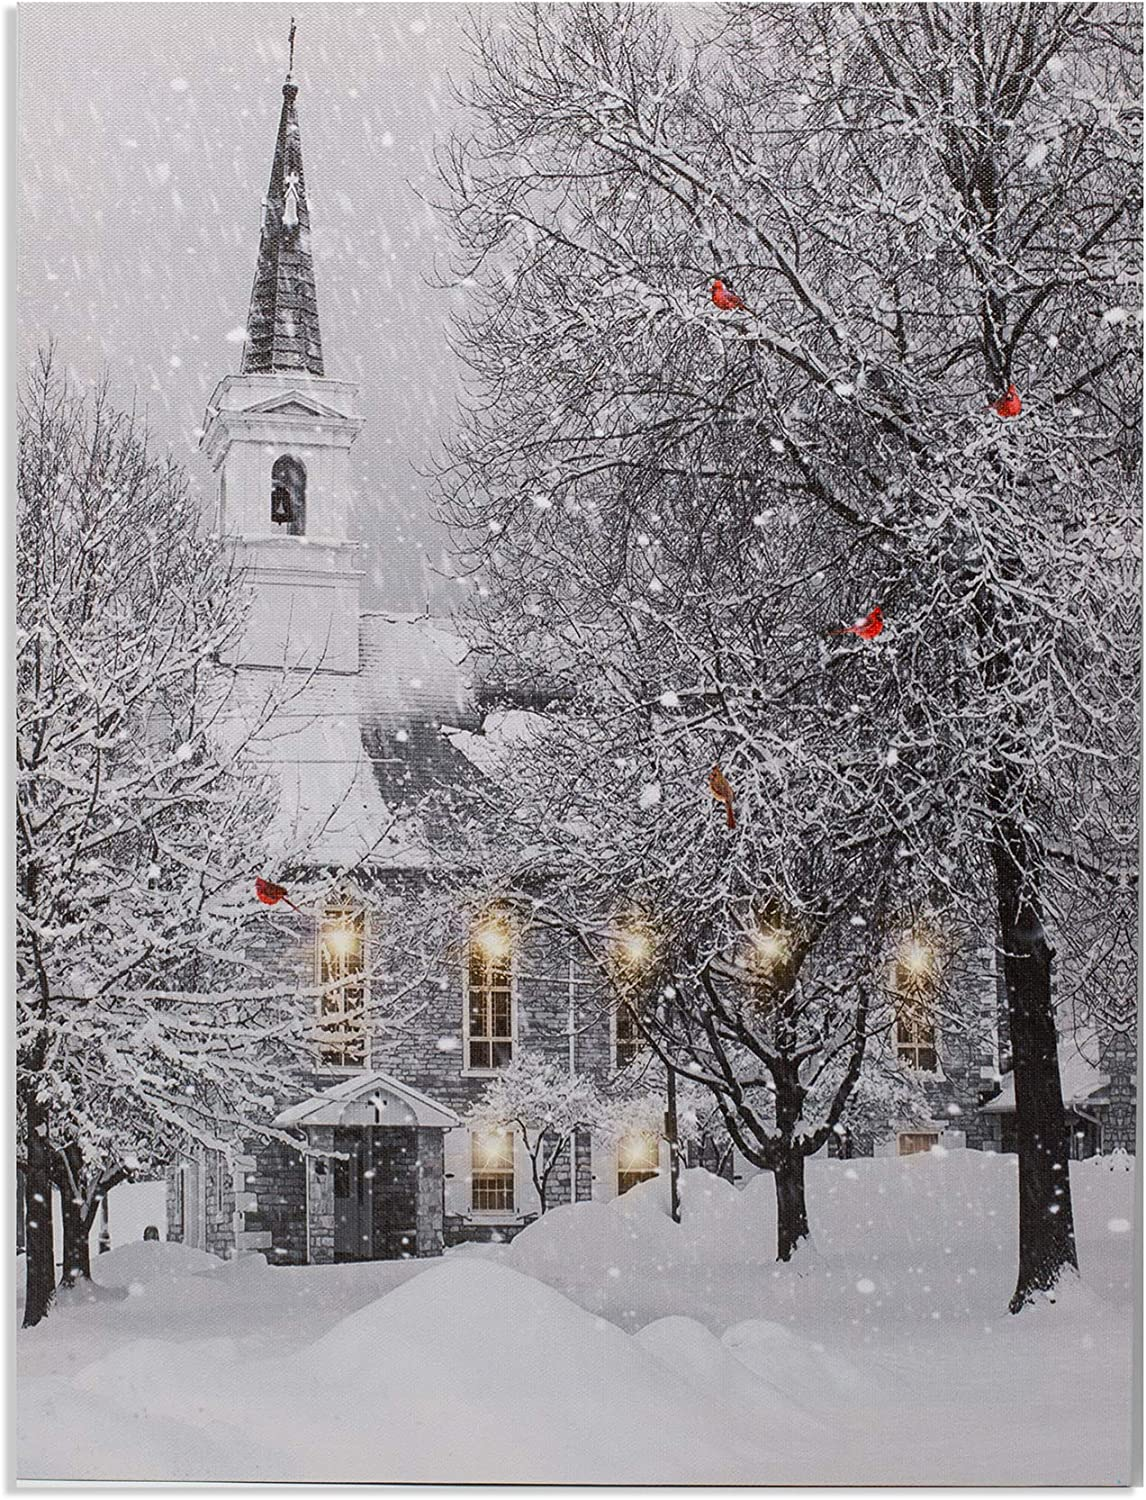 Amazon Com Christmas Wall Art Led Lighted Canvas Print With A Winter Scene And Village Church Xmas Tree Holiday Wreath And Cardinals Posters Prints